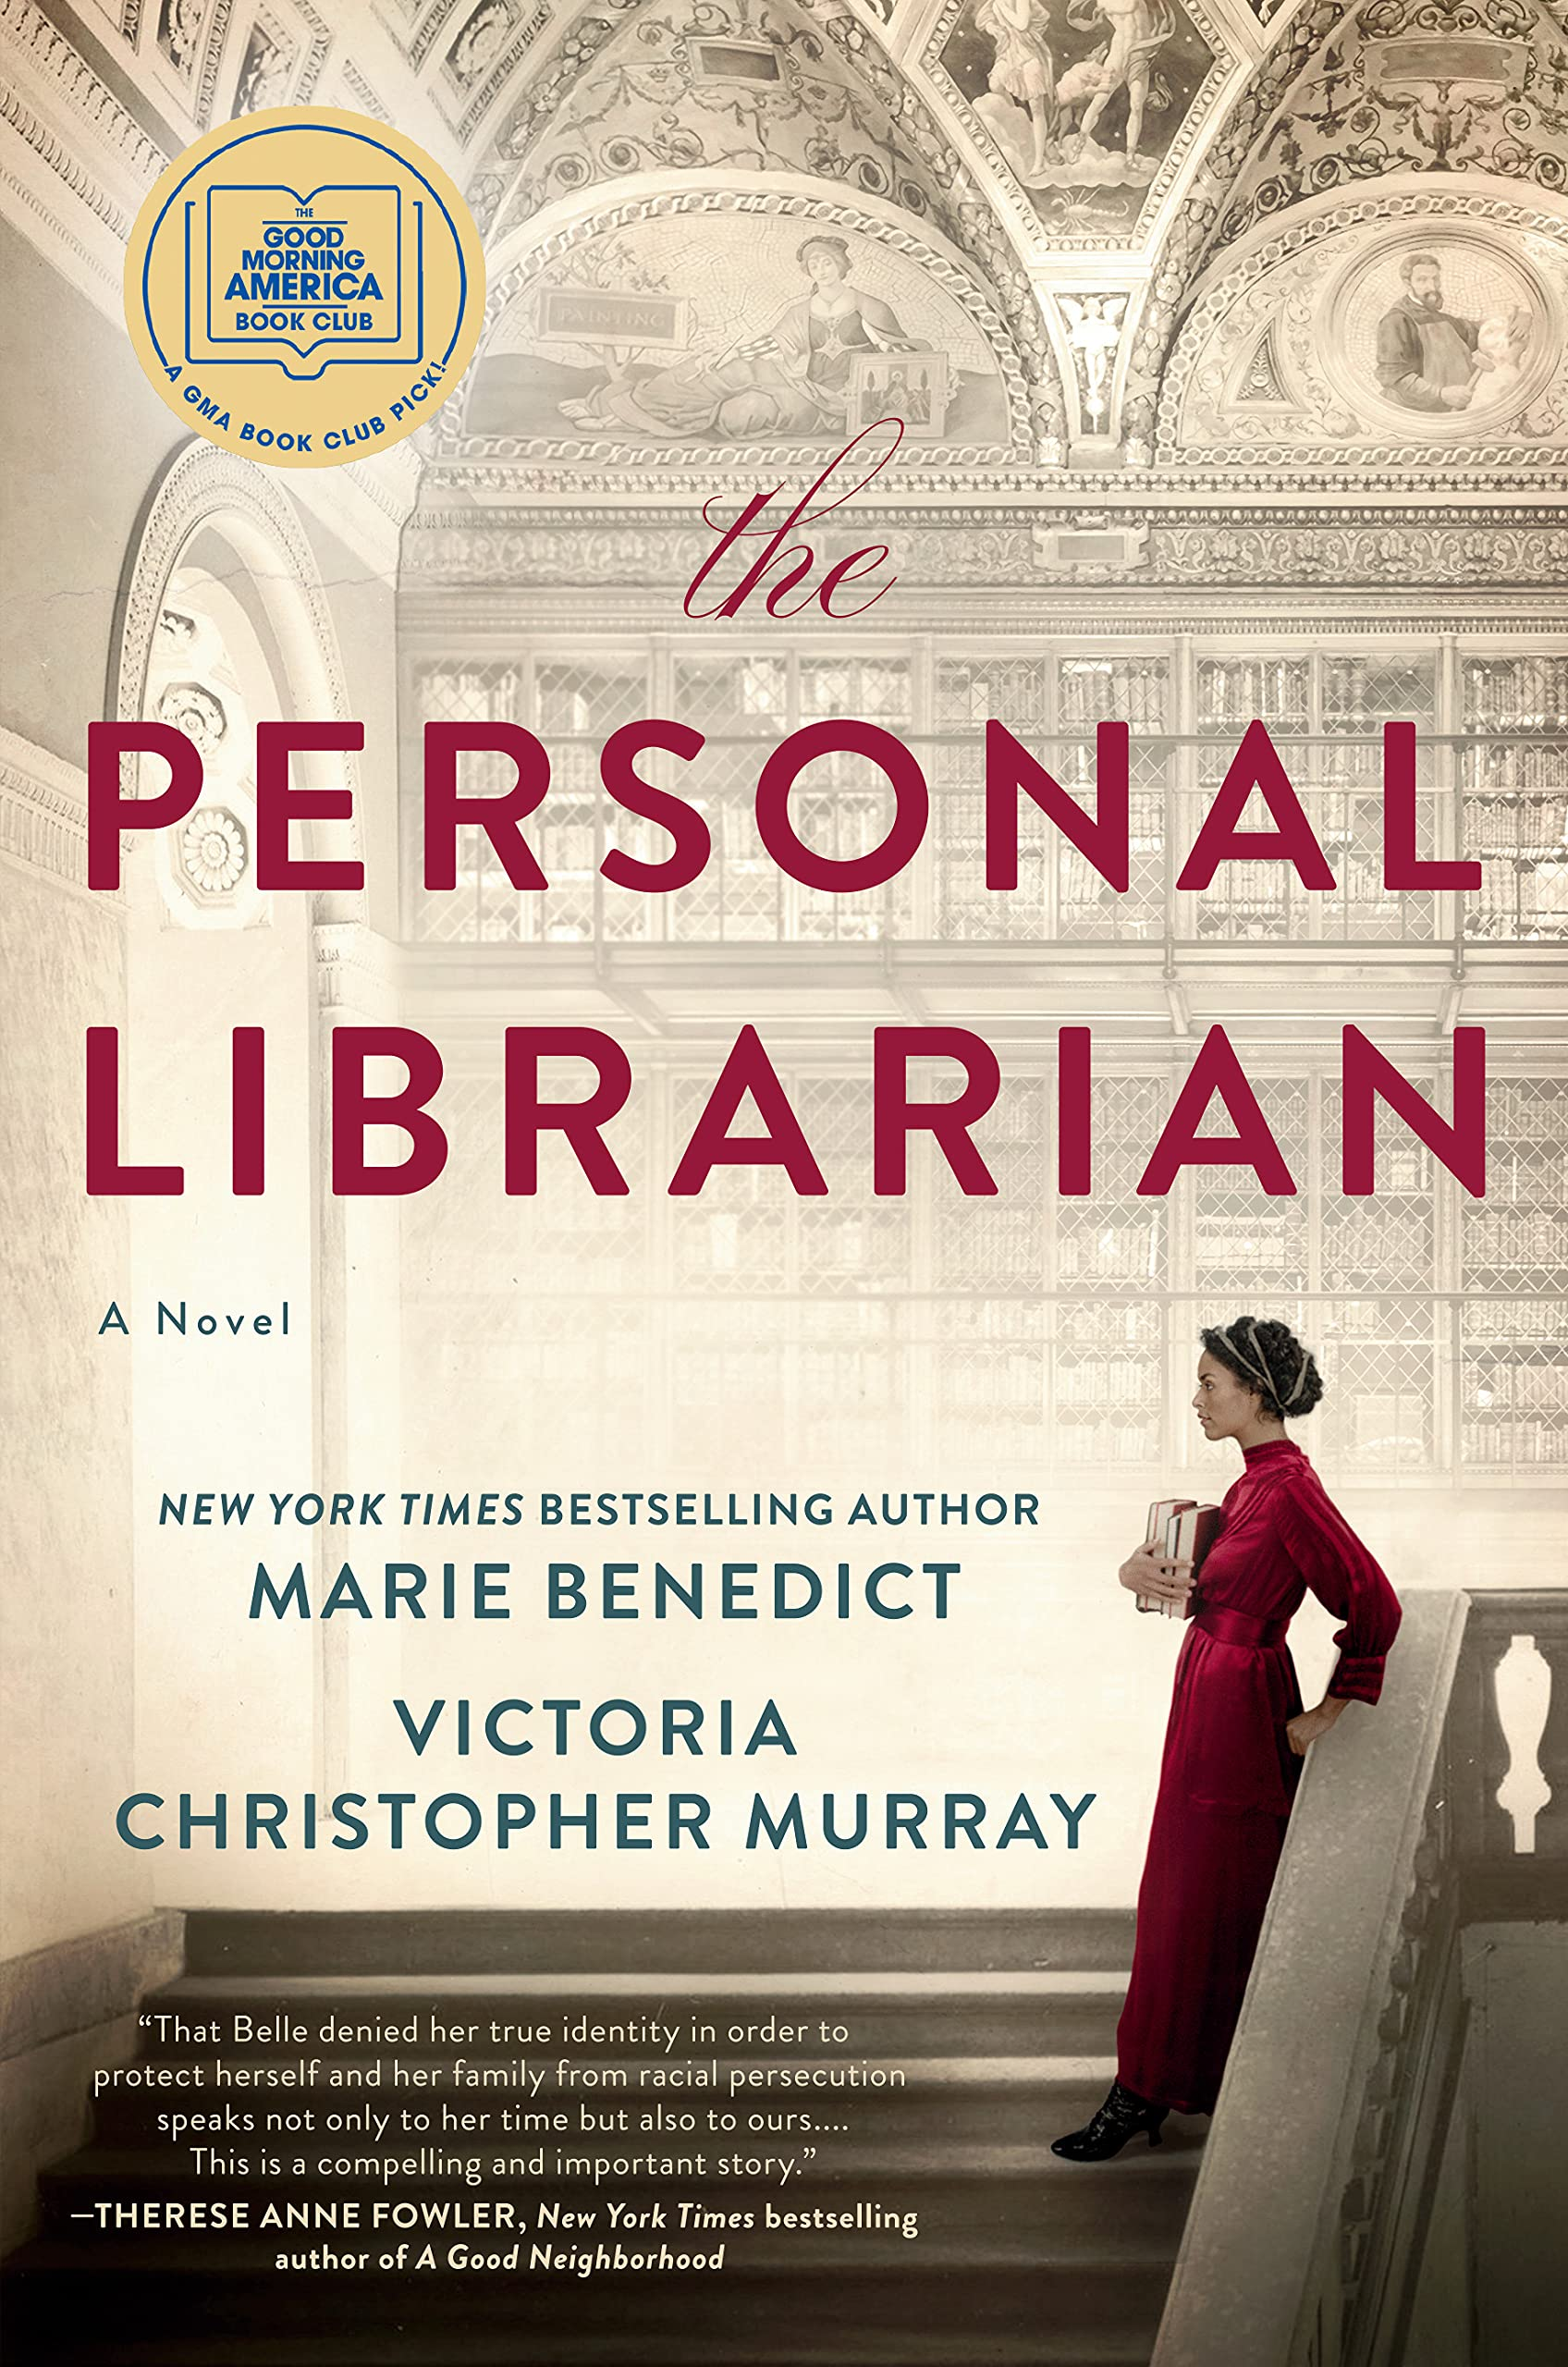 Amazon.com: The Personal Librarian: 9780593101537: Benedict, Marie, Murray, Victoria Christopher: Books